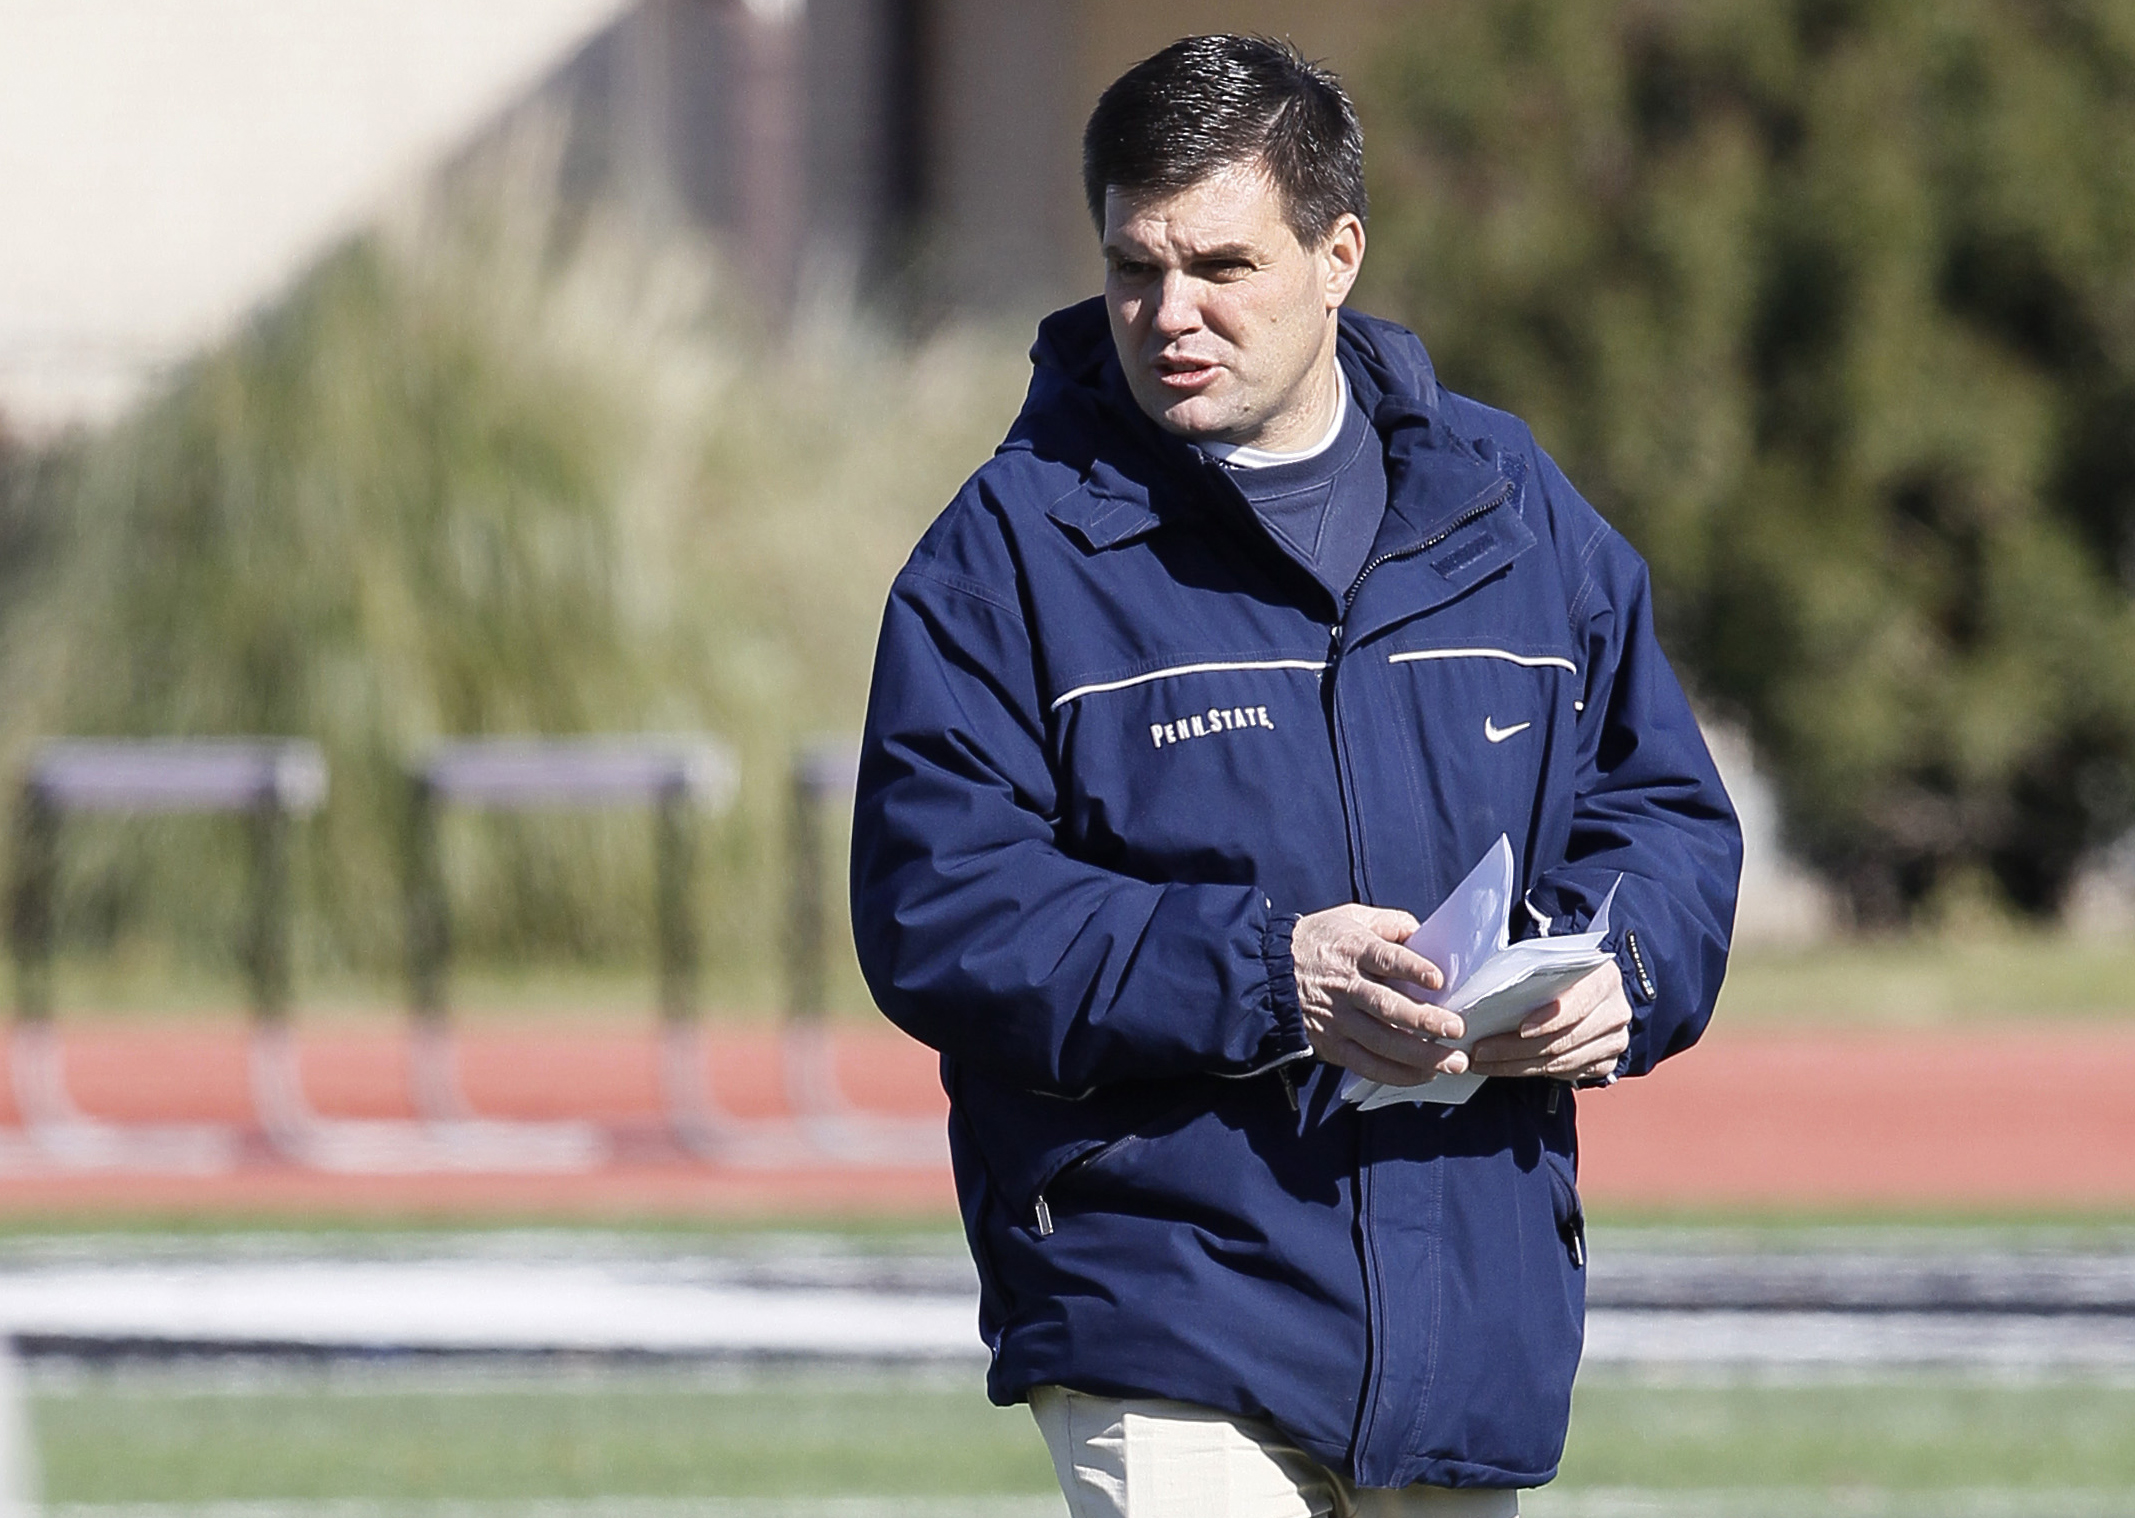 FILE - In this Dec. 27, 2011, file photo, Penn State assistant coach Jay Paterno, son of Joe Paterno, watches during NCAA college football game practice at Bishop Lynch High School in Dallas. A federal lawsuit filed against Penn State by  son of late foot